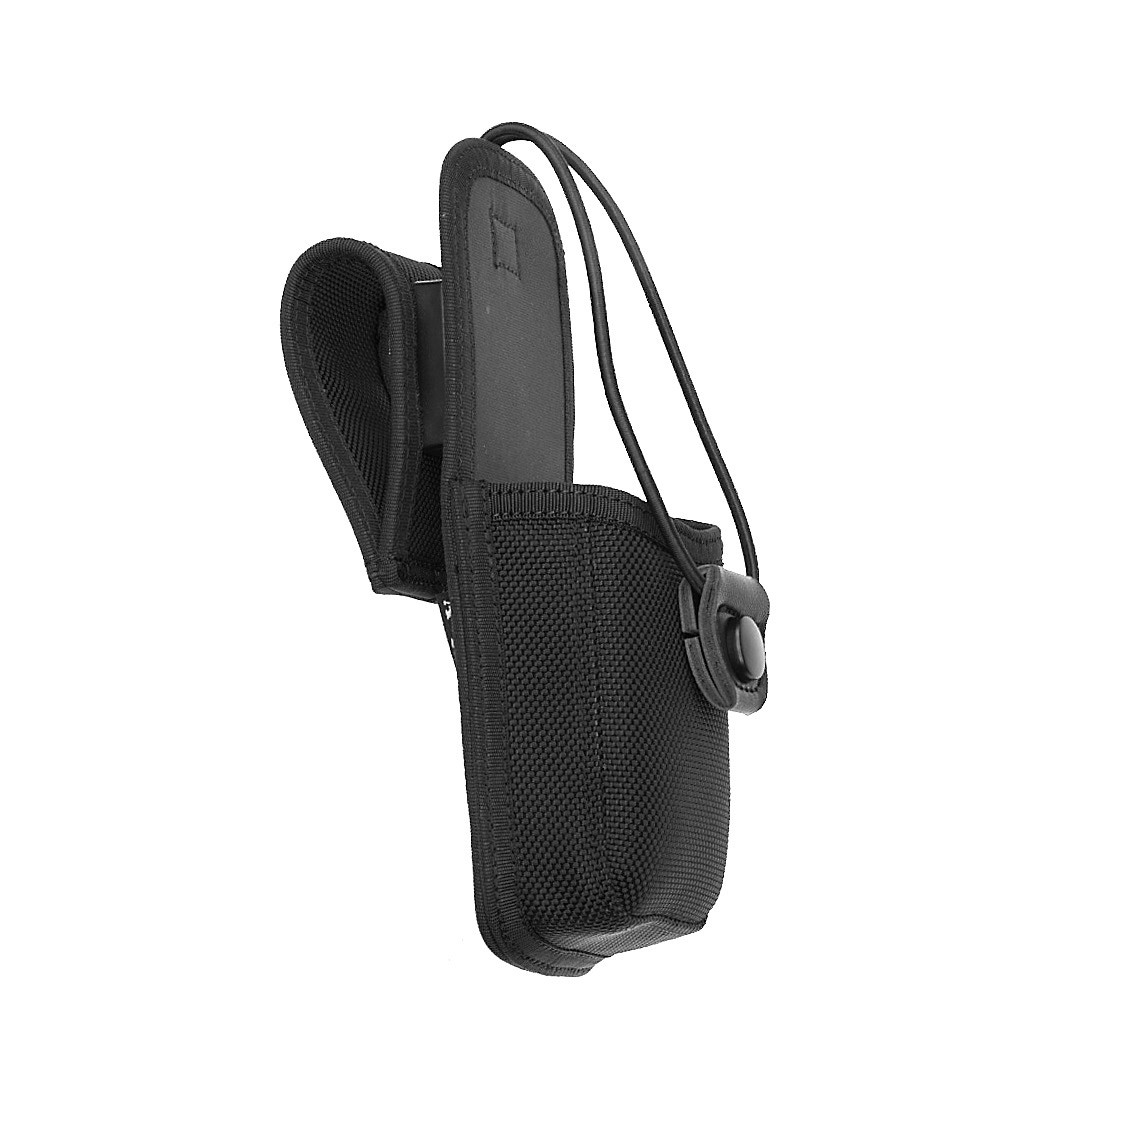 A-TAC™ Nylon Swivel Radio Holder Model Number: 988